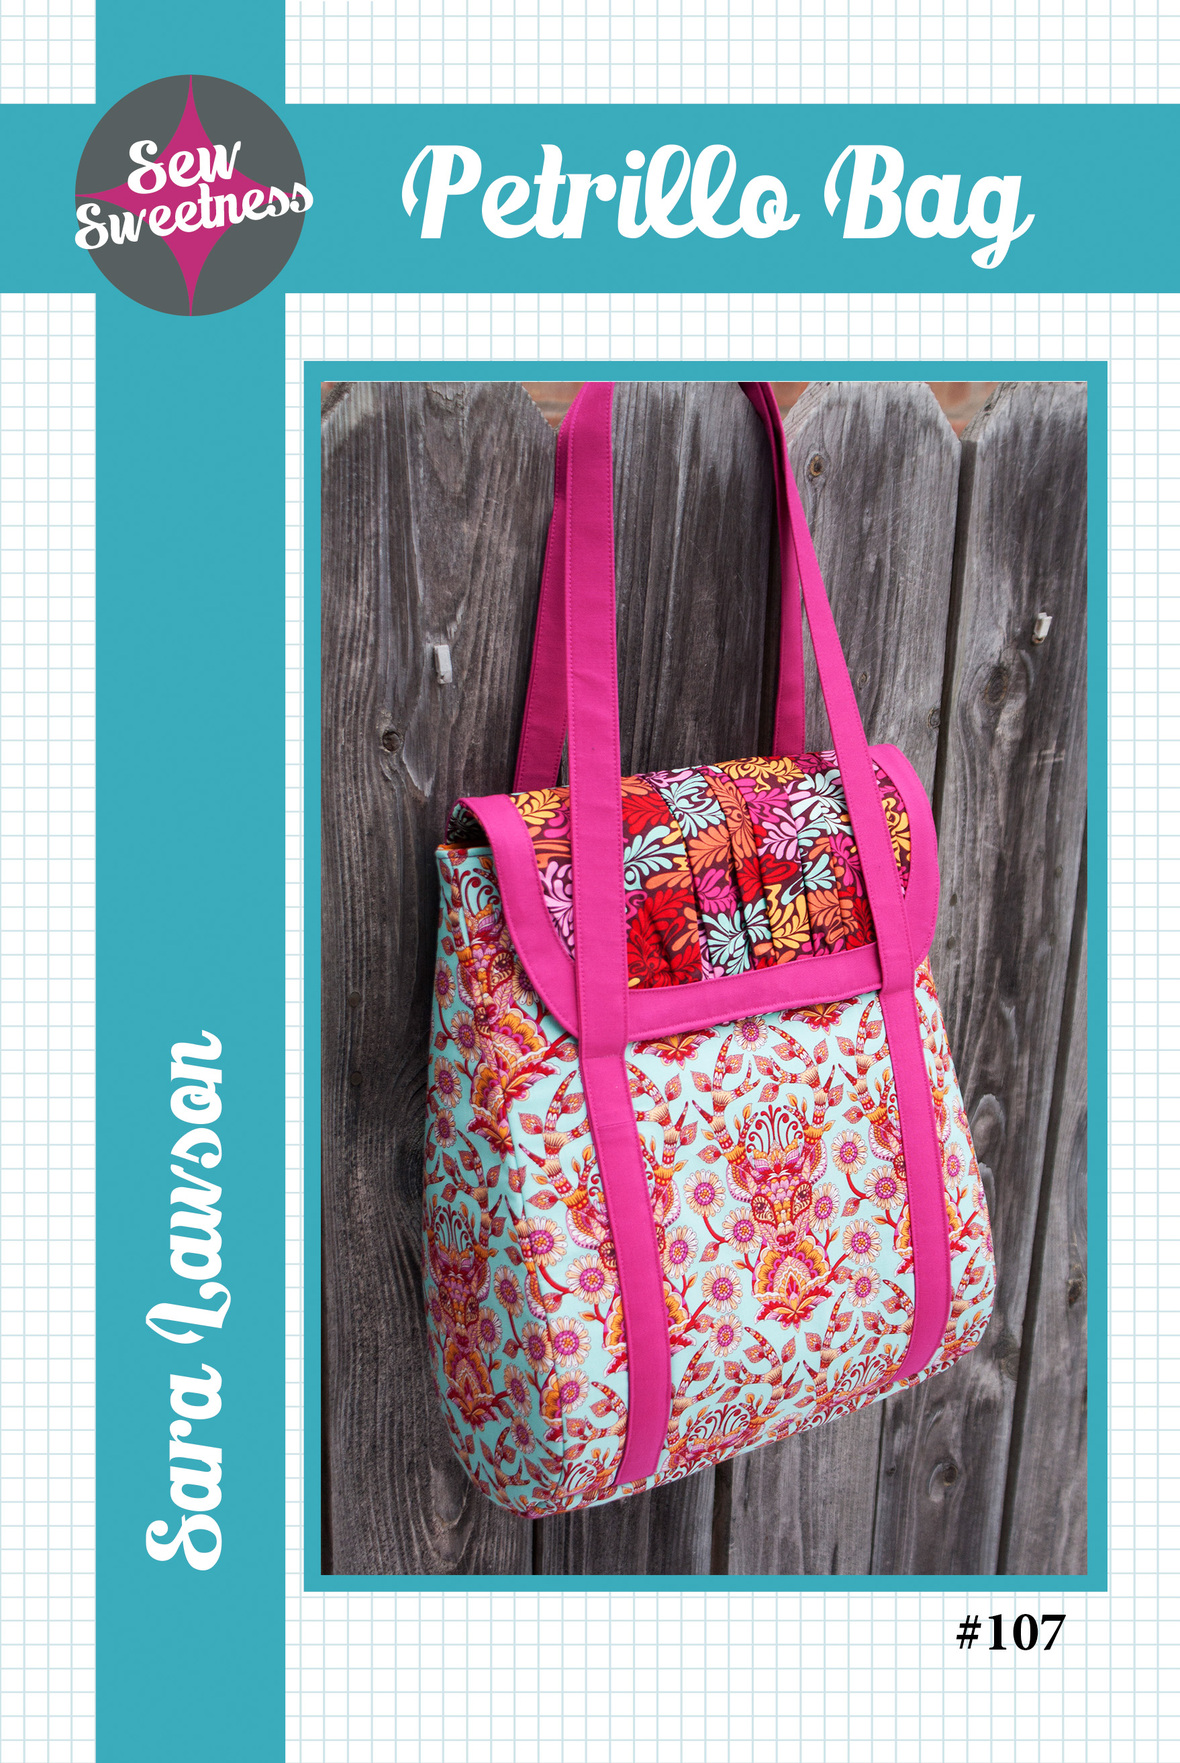 sew sweetness  petrillo bag sewing pattern